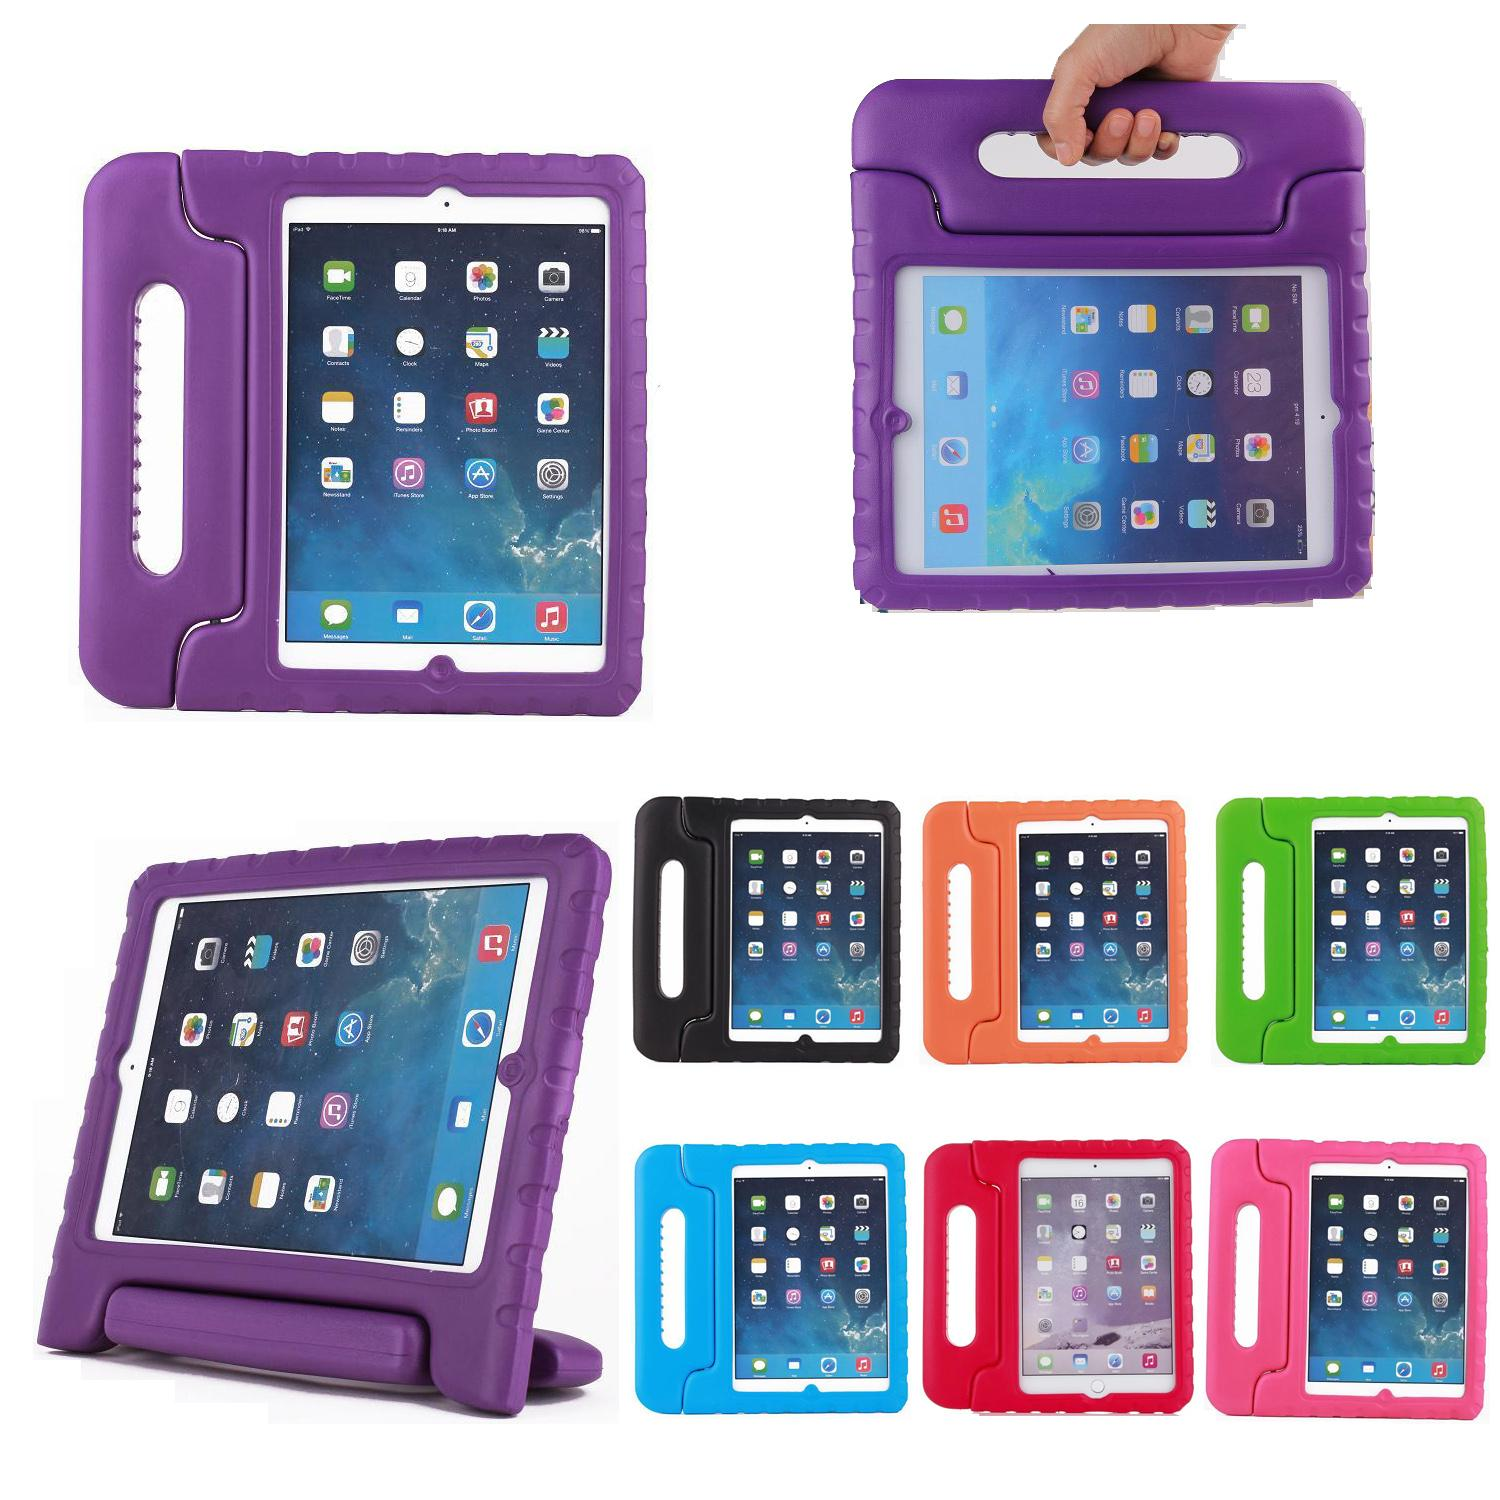 EVA Foam Handle Kids Children Stand Case For Apple Ipad MINI 2 3 4 Air 2018 9.7 Shockproof Cover Tablet Case